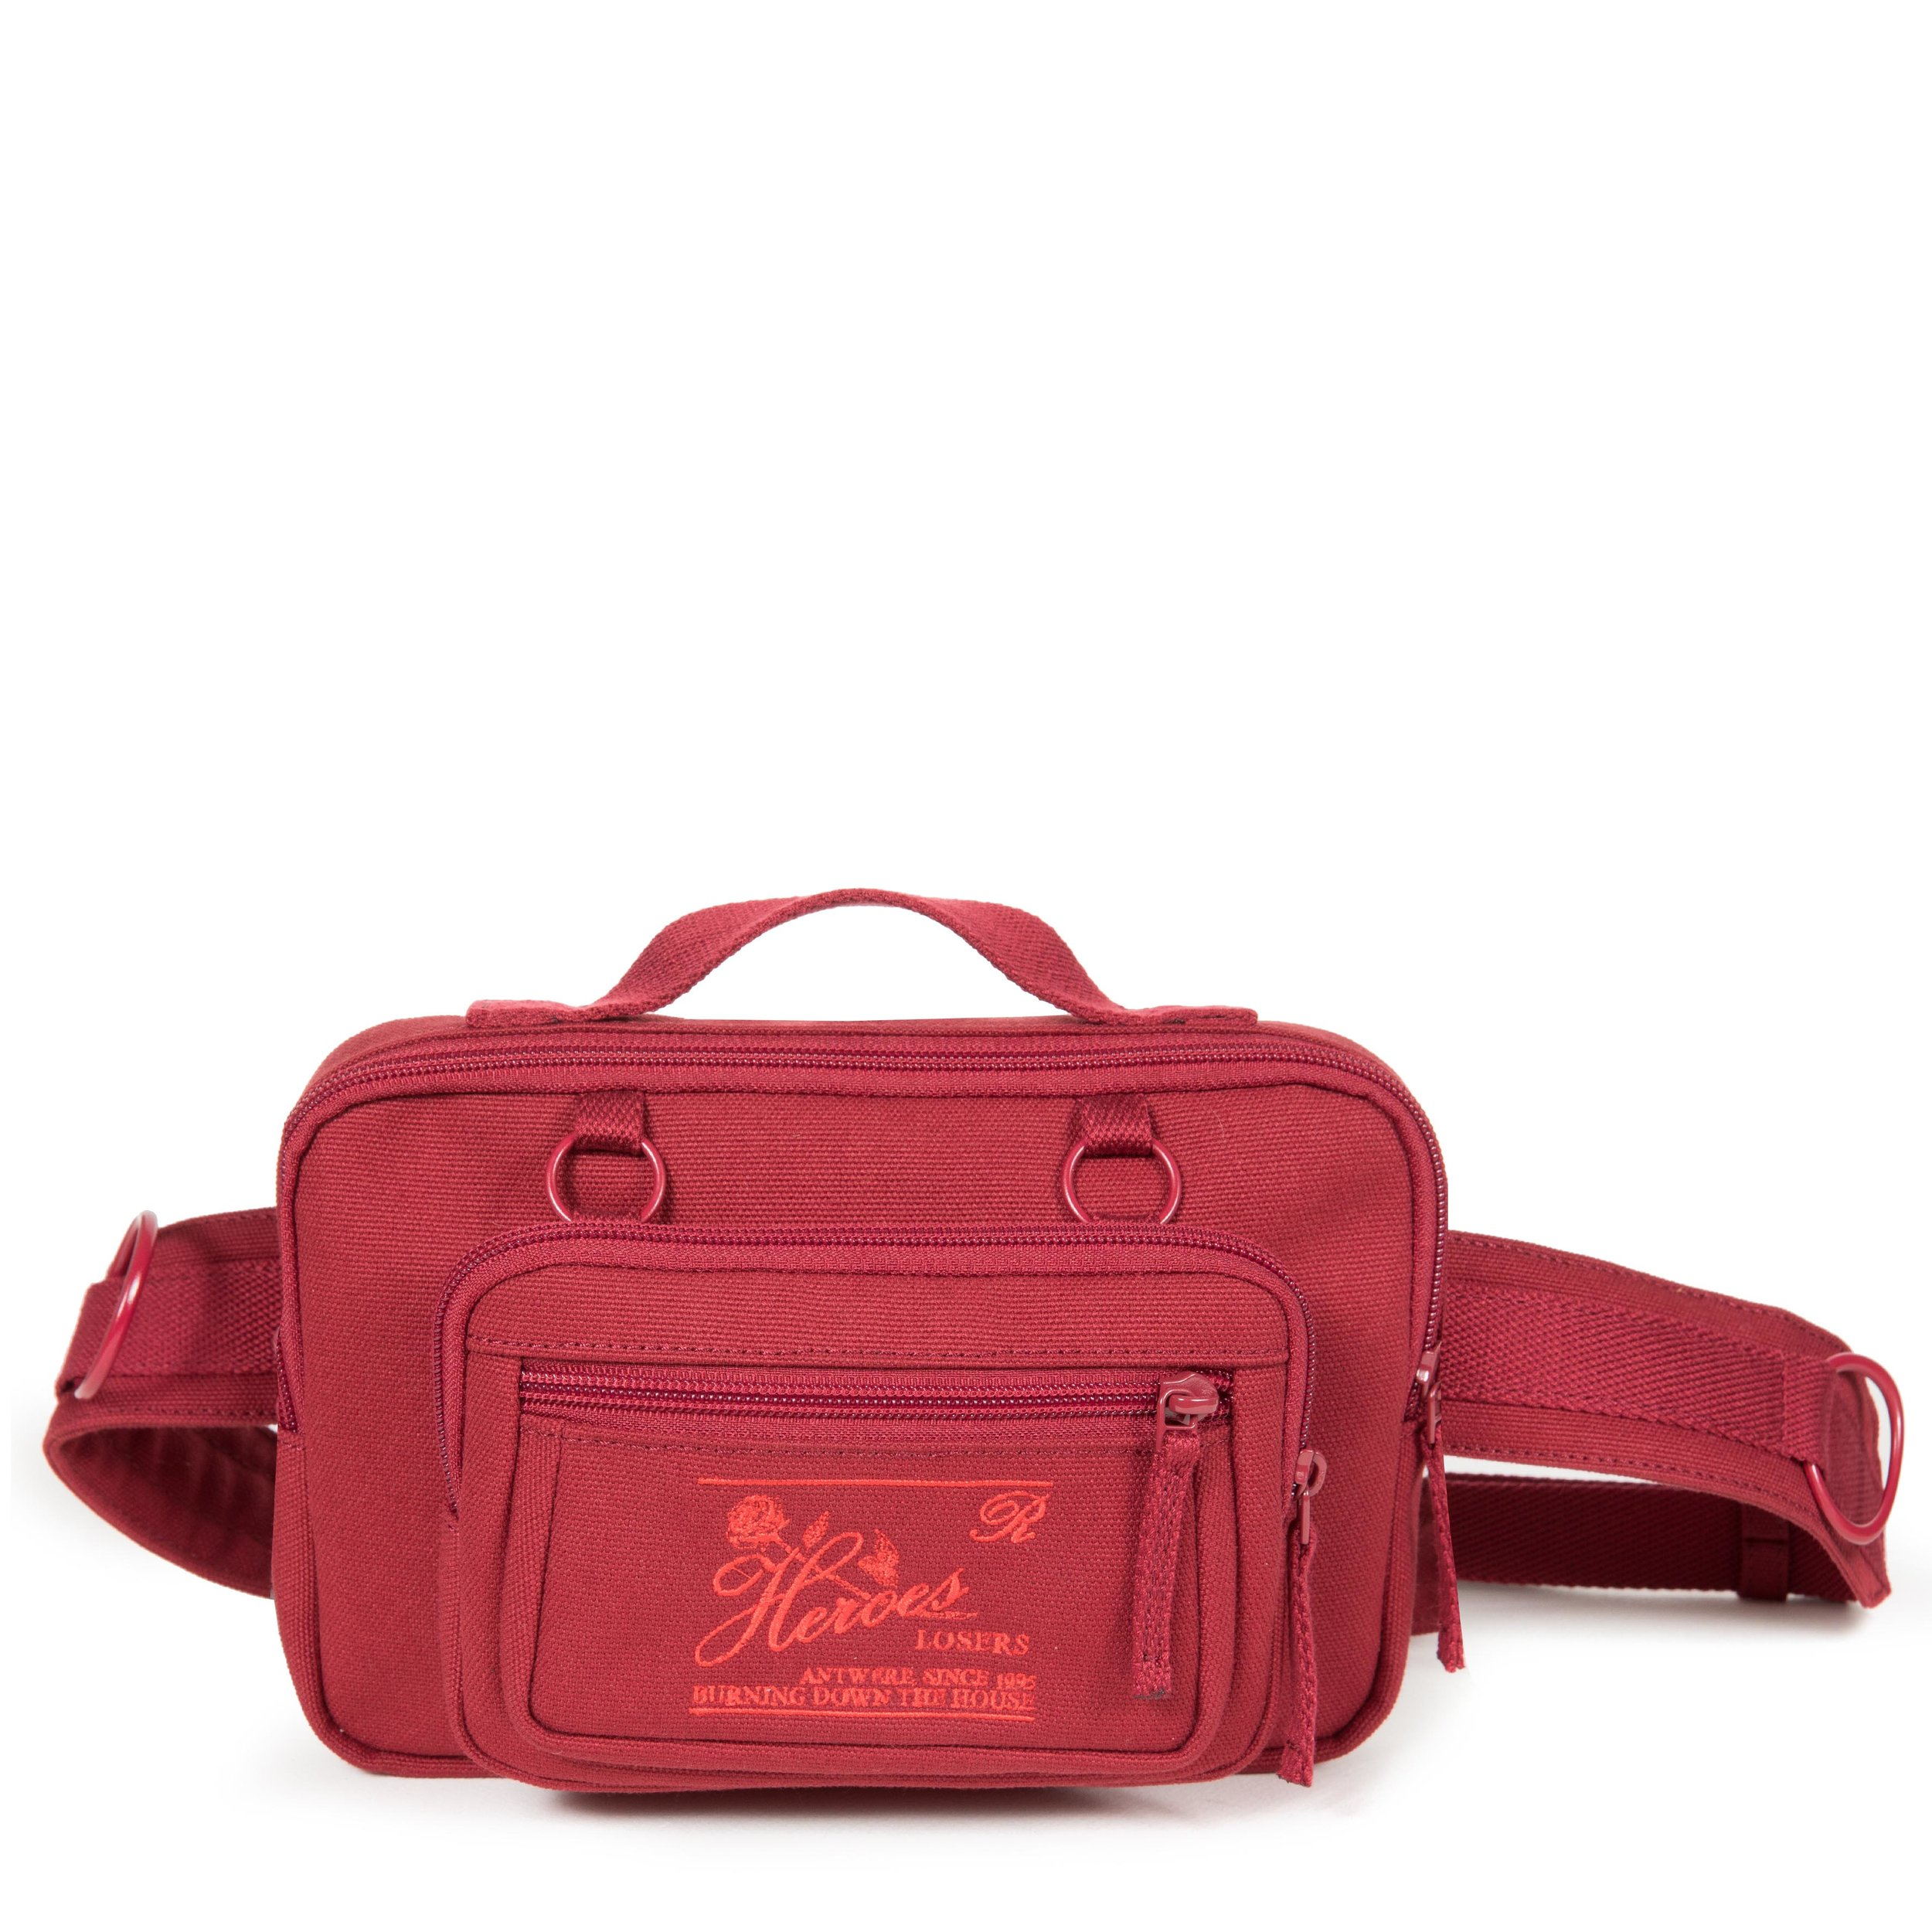 Eastpak X Raf Simons - Waistbag Loop - Burgundy - £100 - www.eastpak.jpg